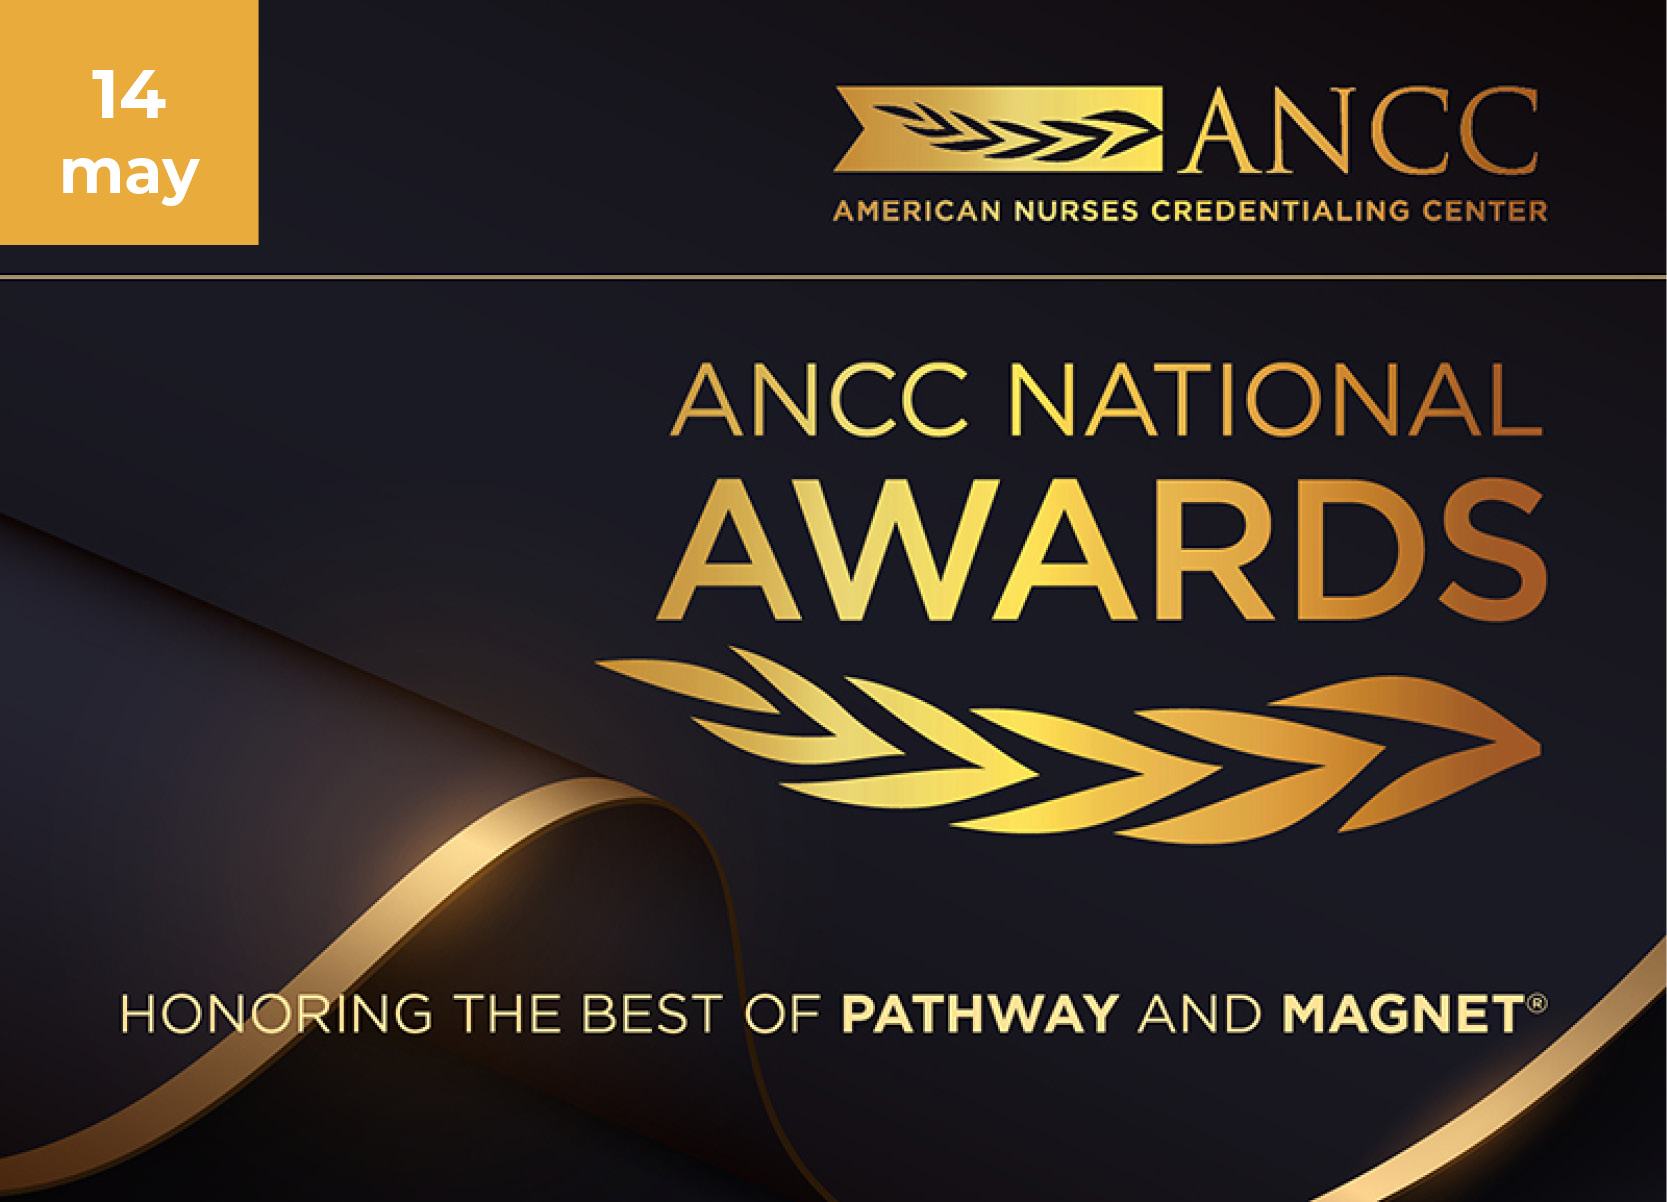 ANCC National Awards. Honoring the best of Pathway and Magnet